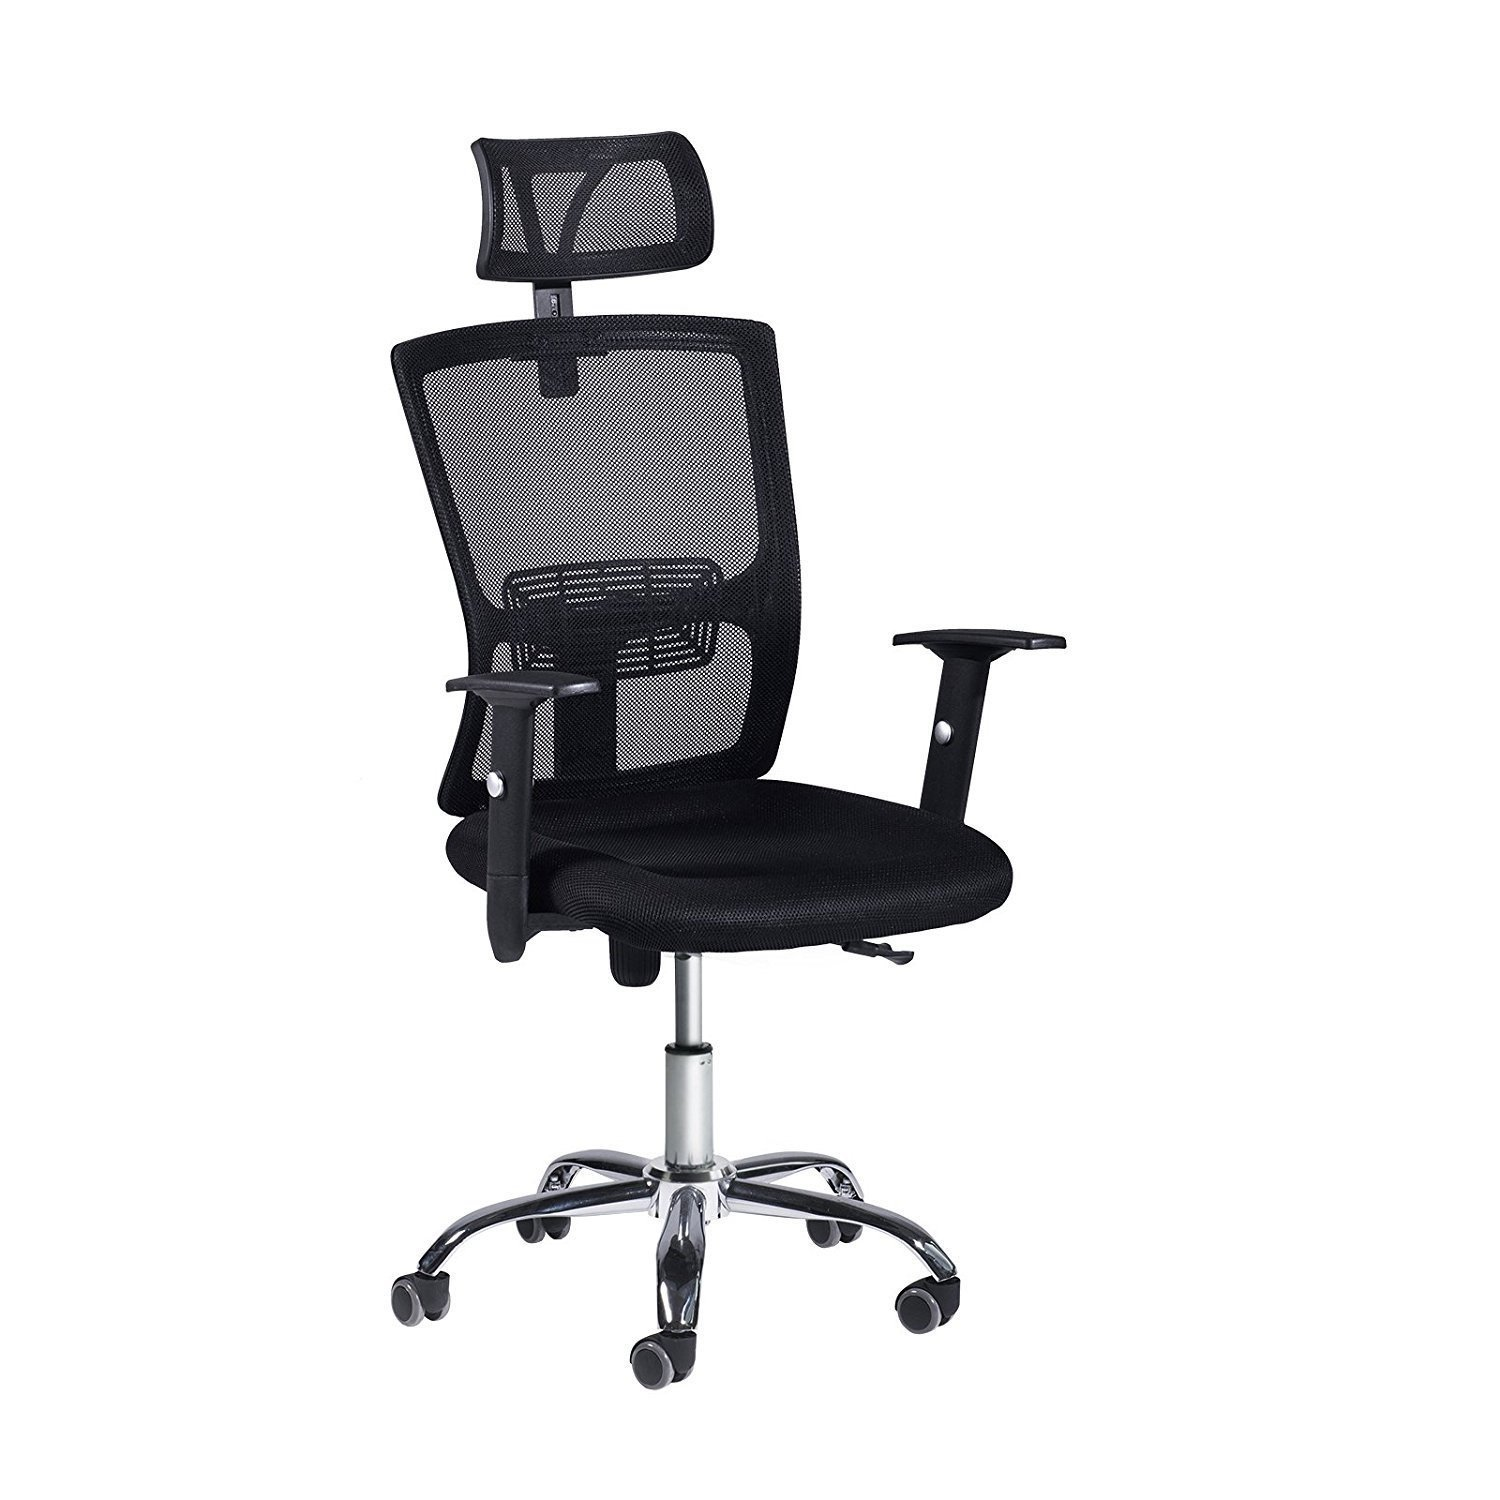 E EVERKING Mesh Ergonomic Office Chair, High Back Executive Task Chair with Adjustable Headrest Armrest,360 Degree Swivel Computer Desk Chair for Gaming Home Office Conference Room